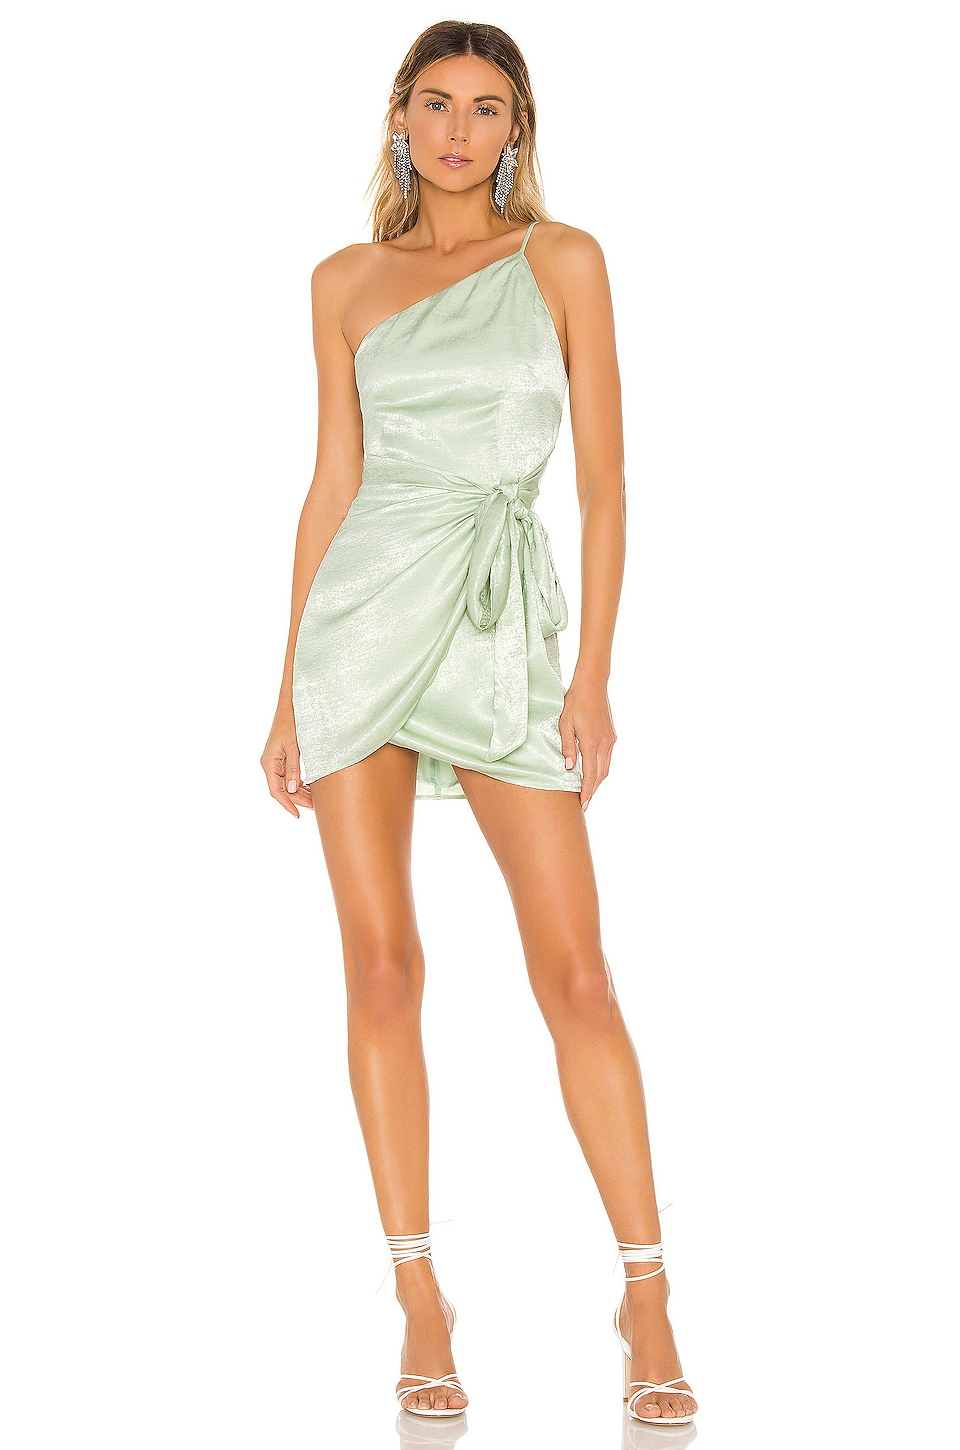 Lovers + Friends Karen Mini Dress in Mint Green